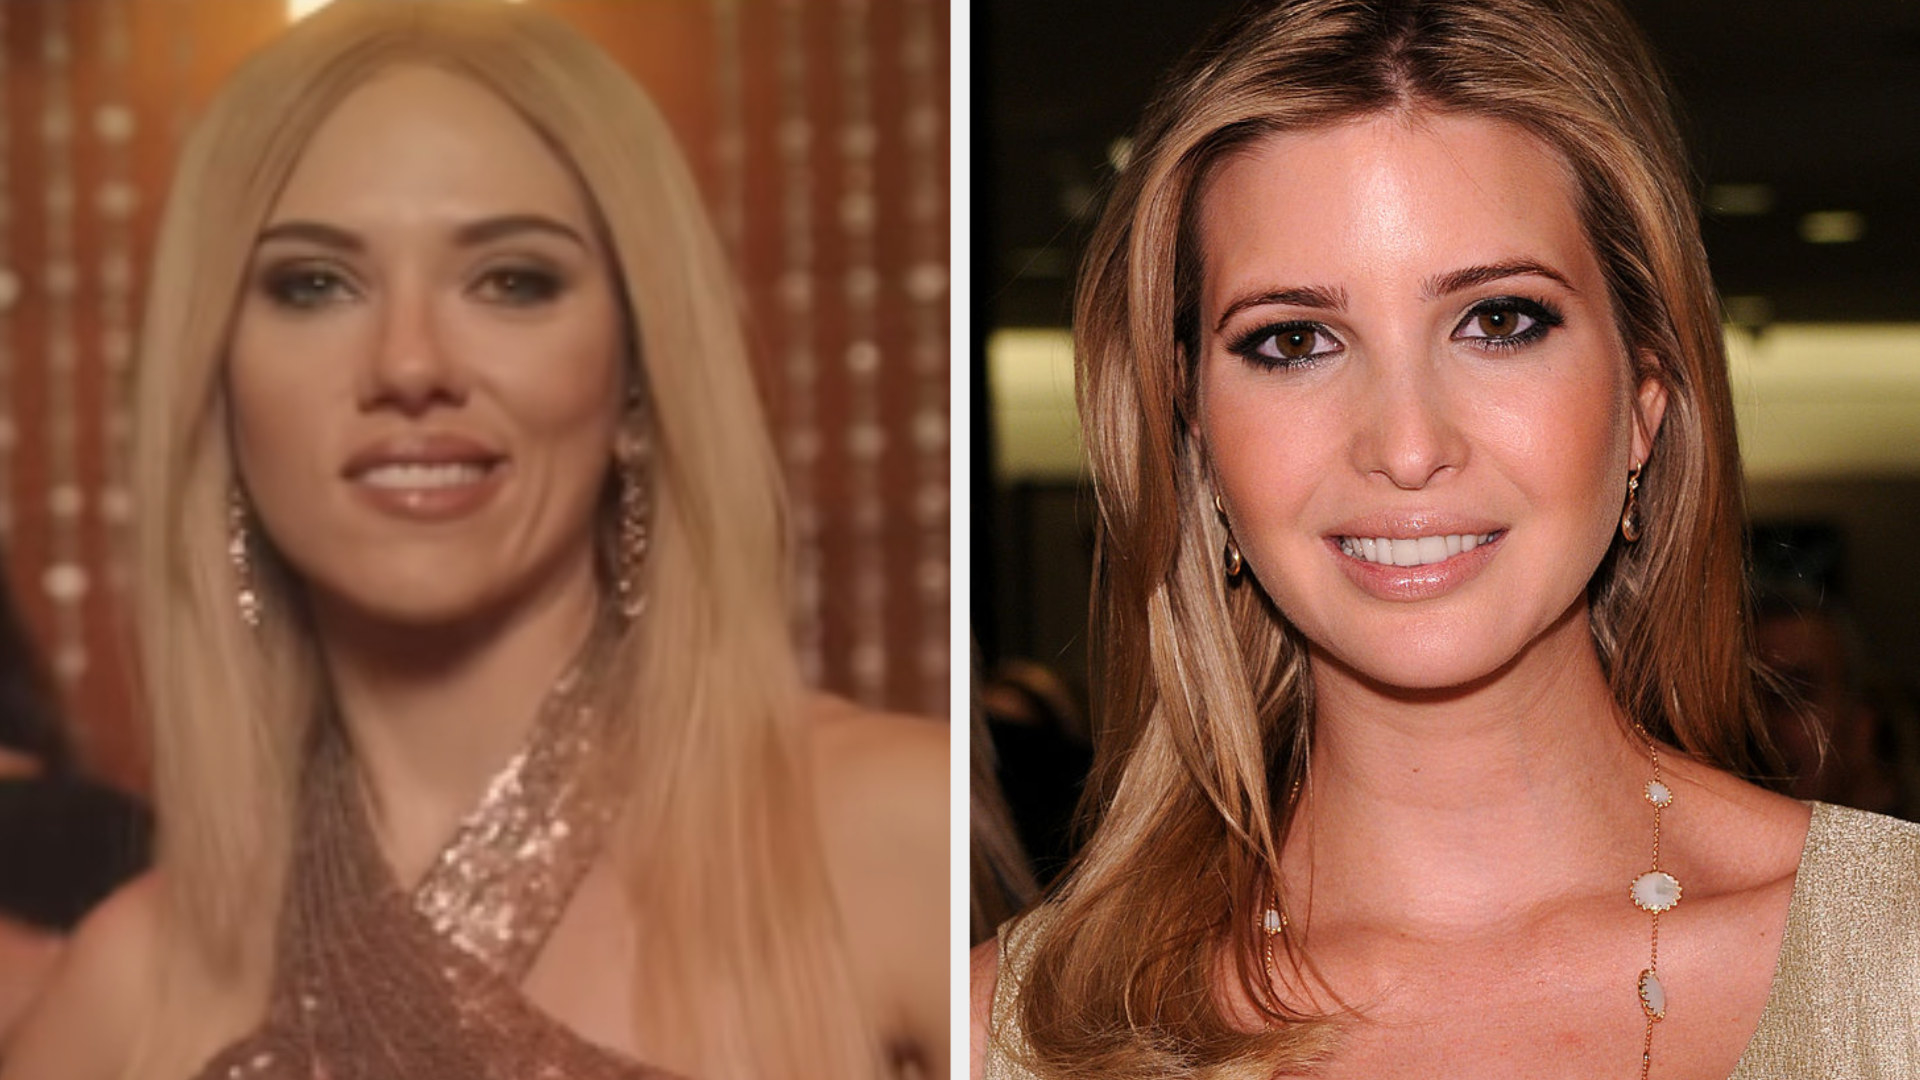 Scarlett Johansson smiling in a blonde wig side by side with Ivanka Trump